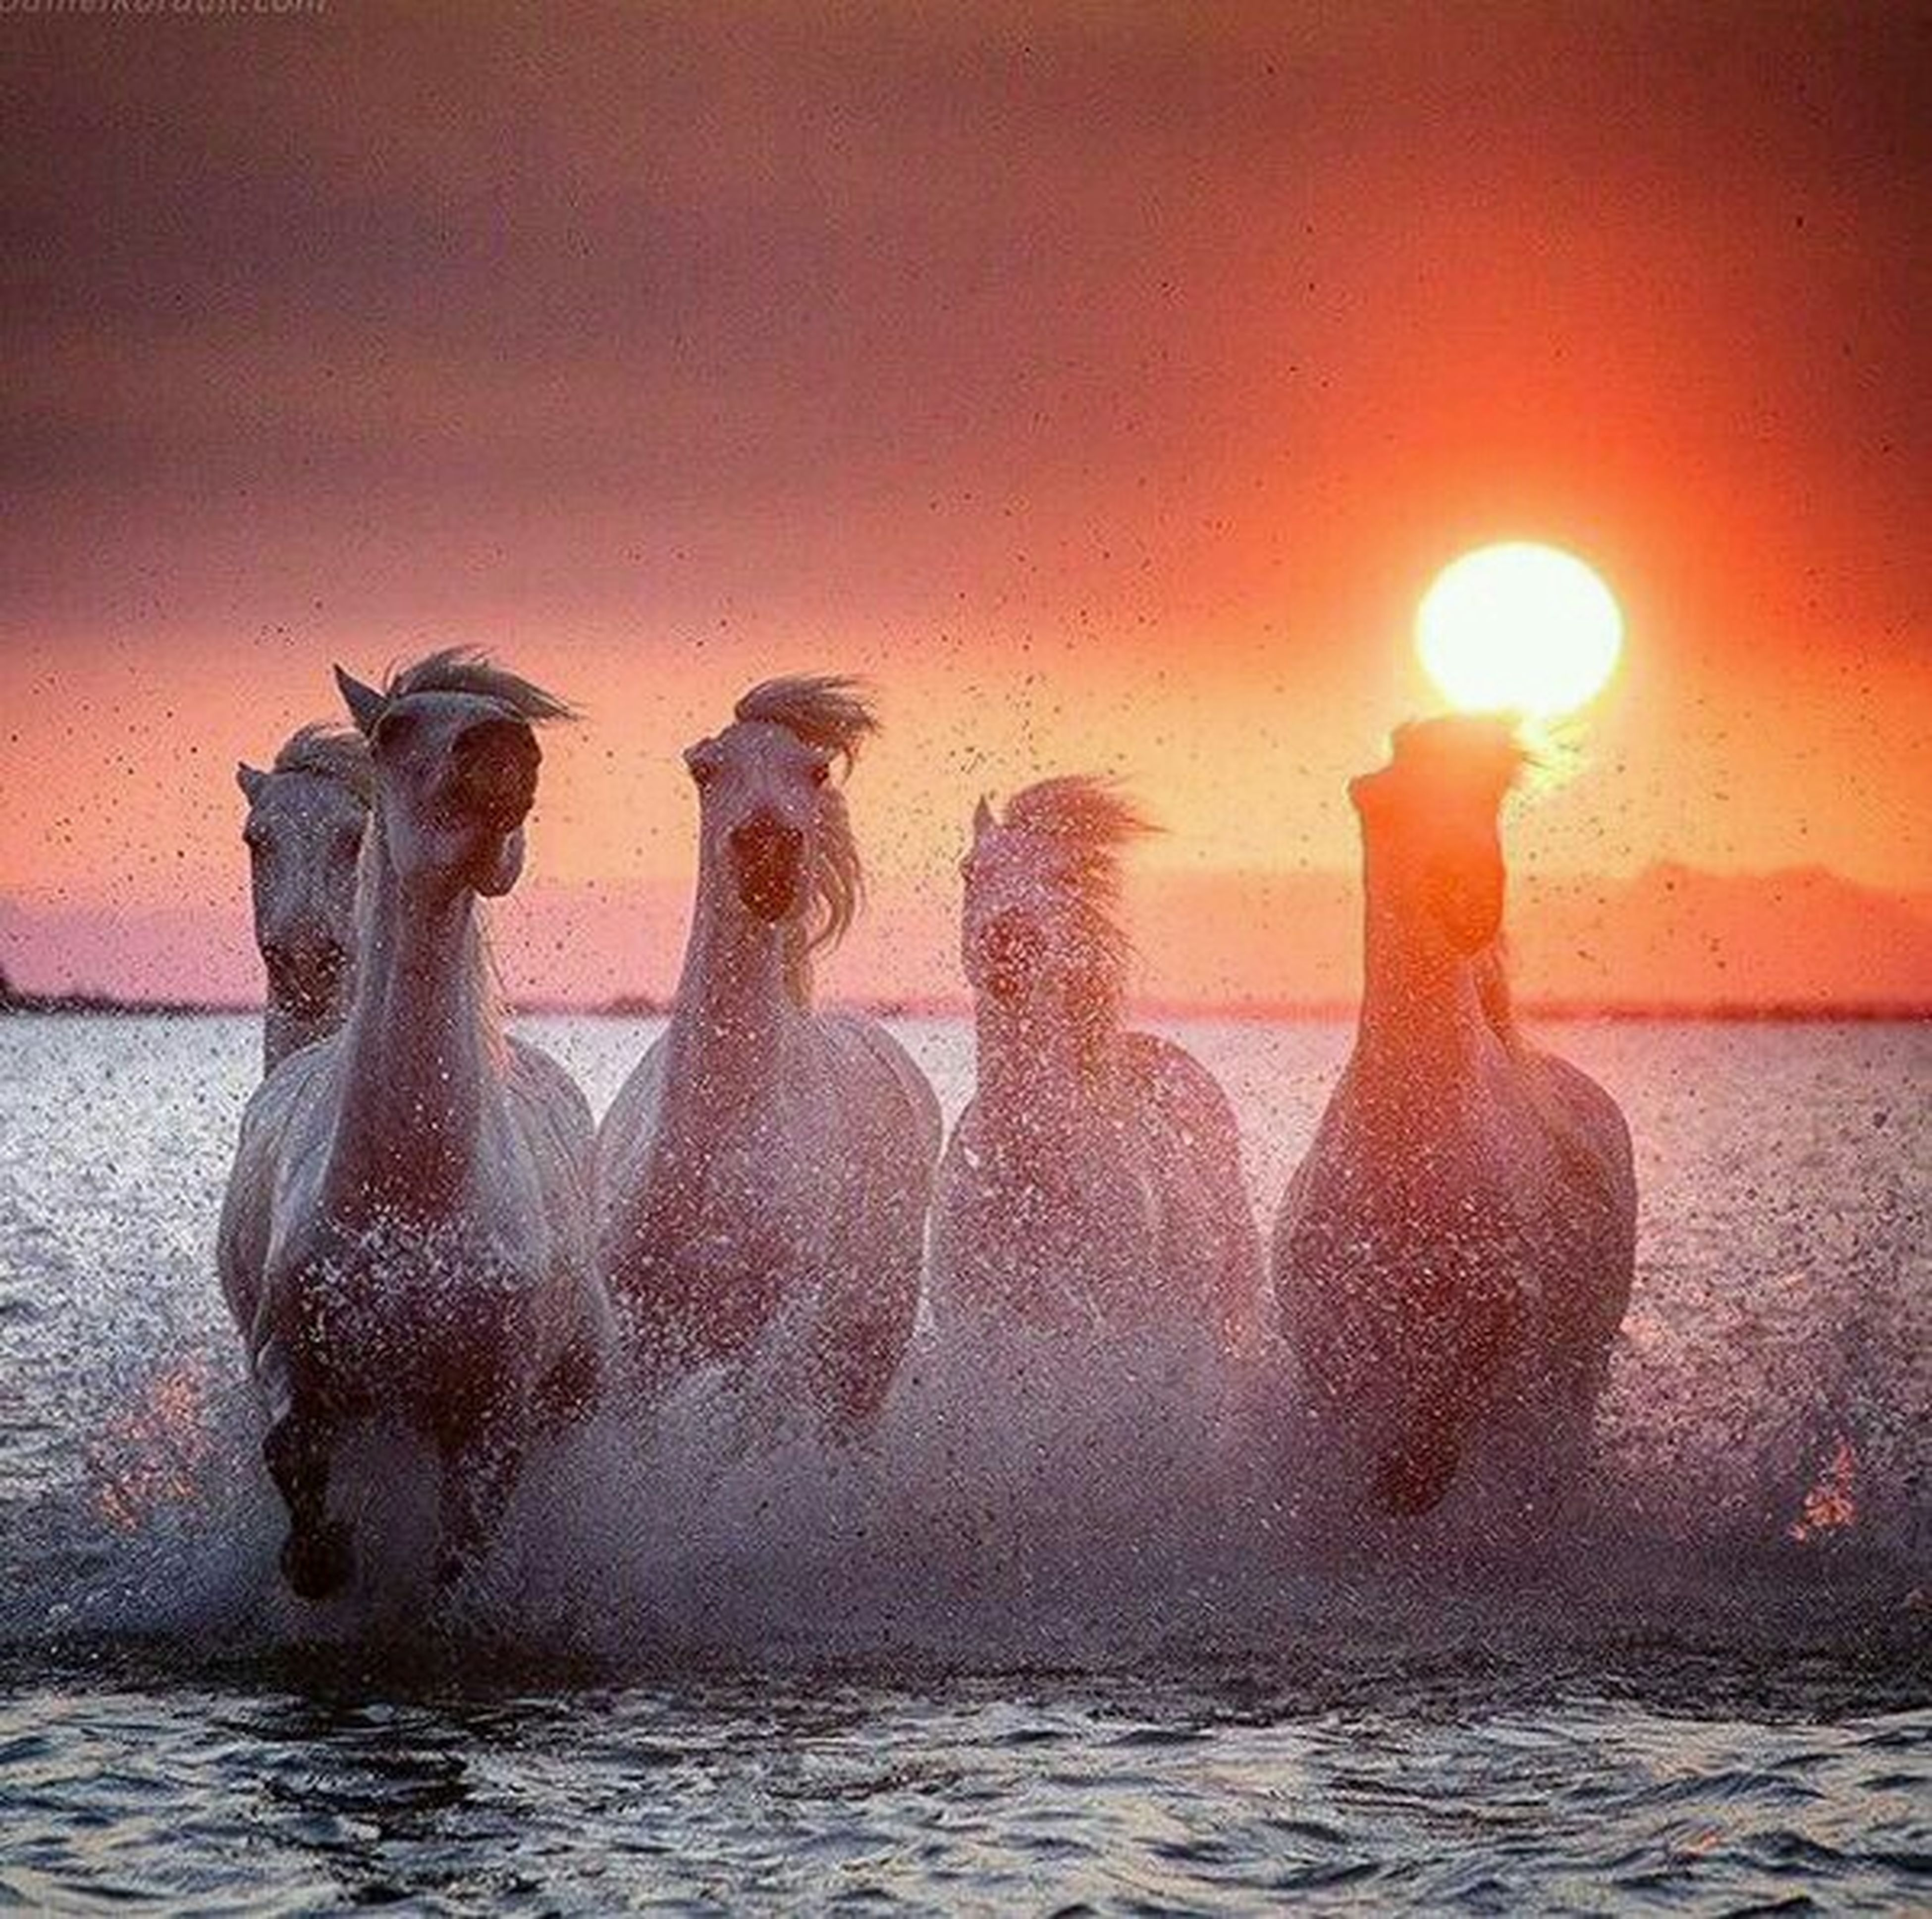 water, splashing, waterfront, sunset, motion, sea, orange color, animal themes, reflection, fountain, outdoors, no people, nature, bird, one animal, sunlight, rippled, animals in the wild, wave, sun